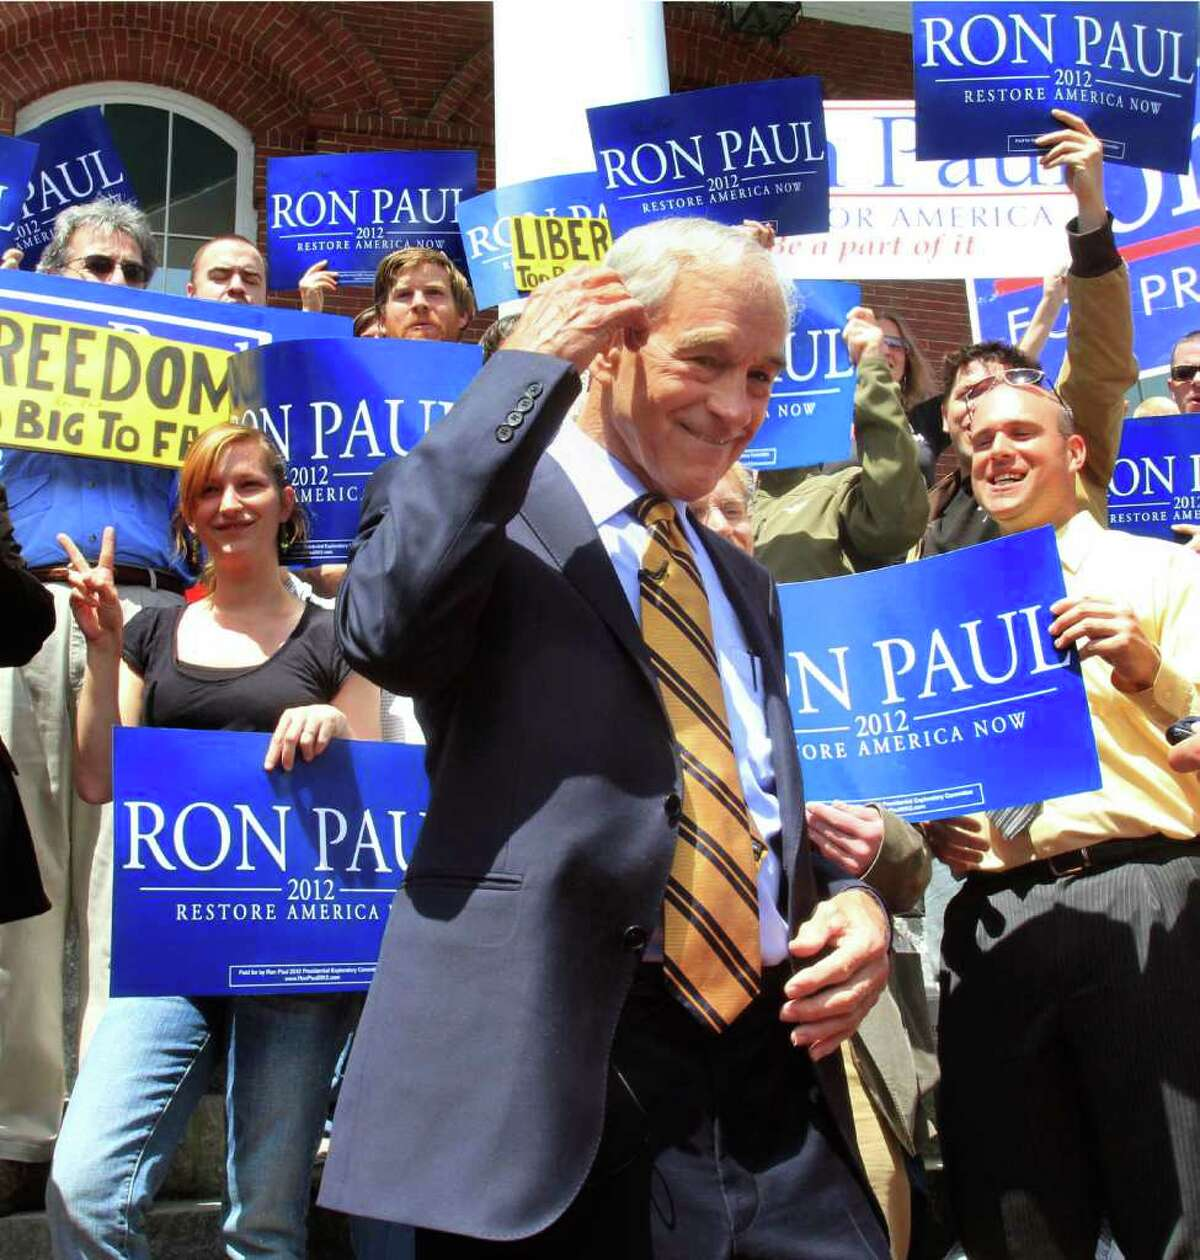 Rep. Ron Paul, R-Texas, campaigns in New Hampshire in May. Since then, he's steadily built a strong base in Iowa. If he wins in Iowa, he, Iowans and the GOP will have a lot of explaining to do about the stances he's taken. And what he's written.